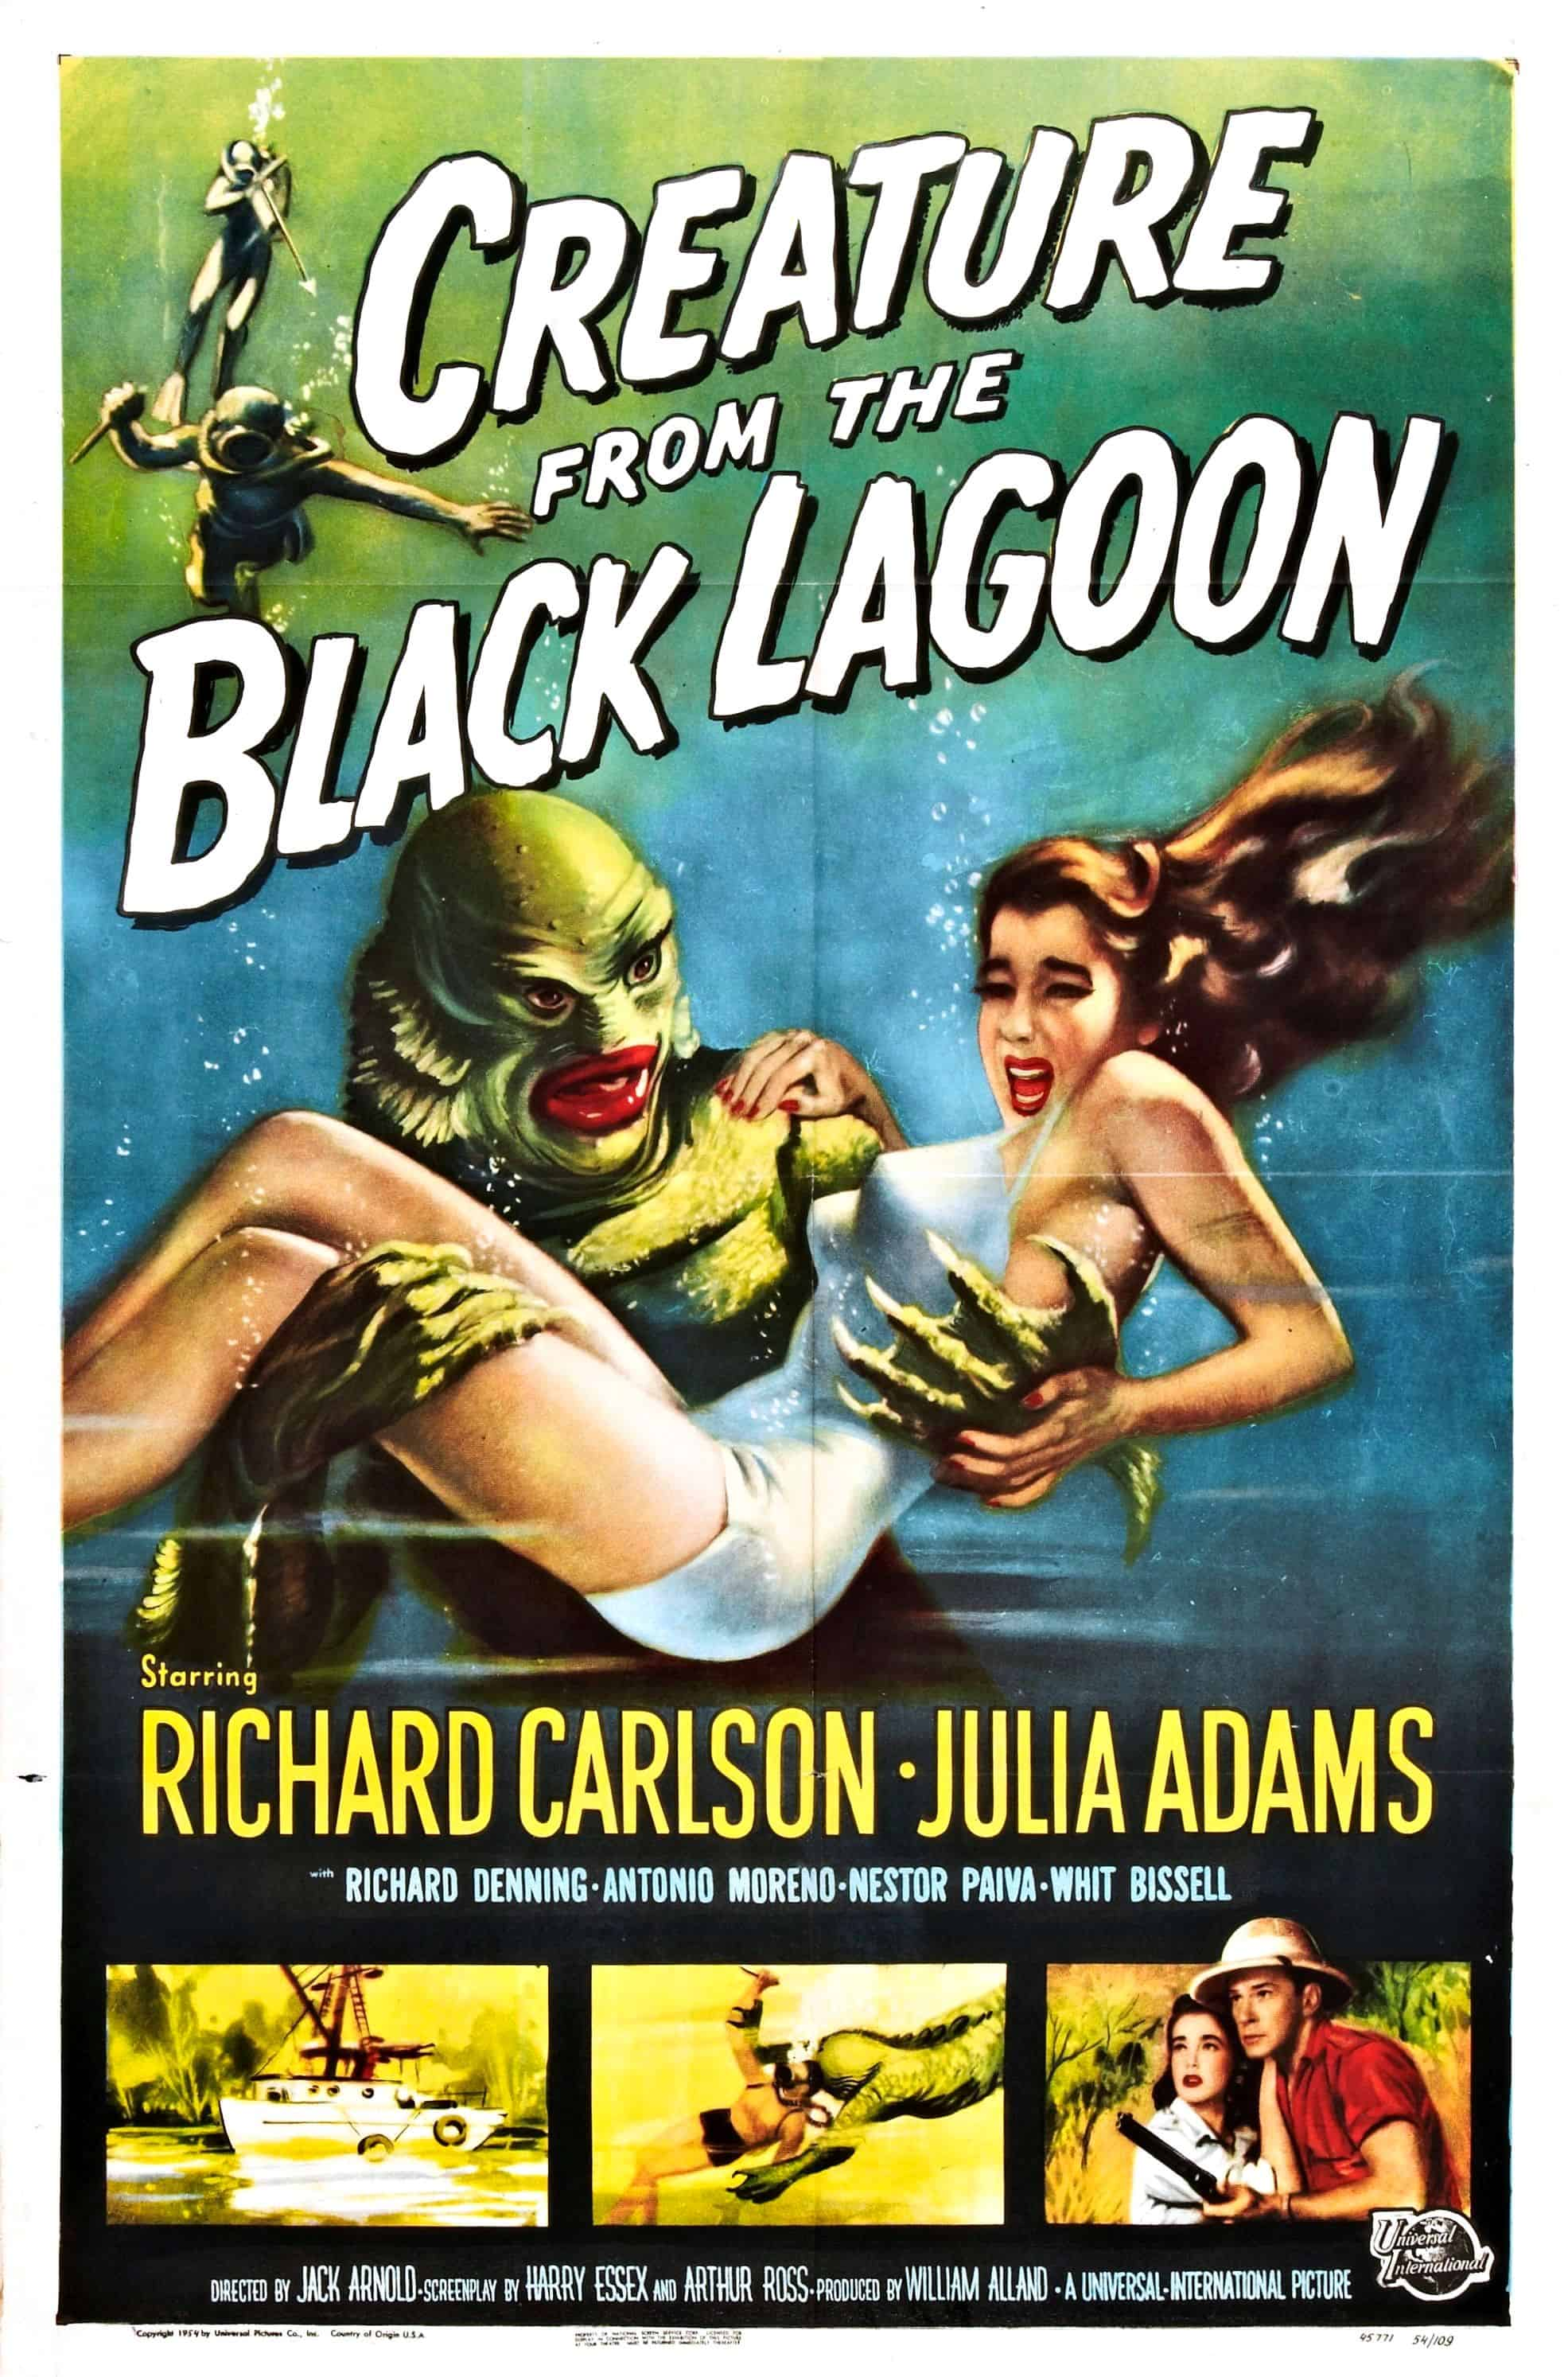 Movie Posters We Love: Creature from The Black Lagoon